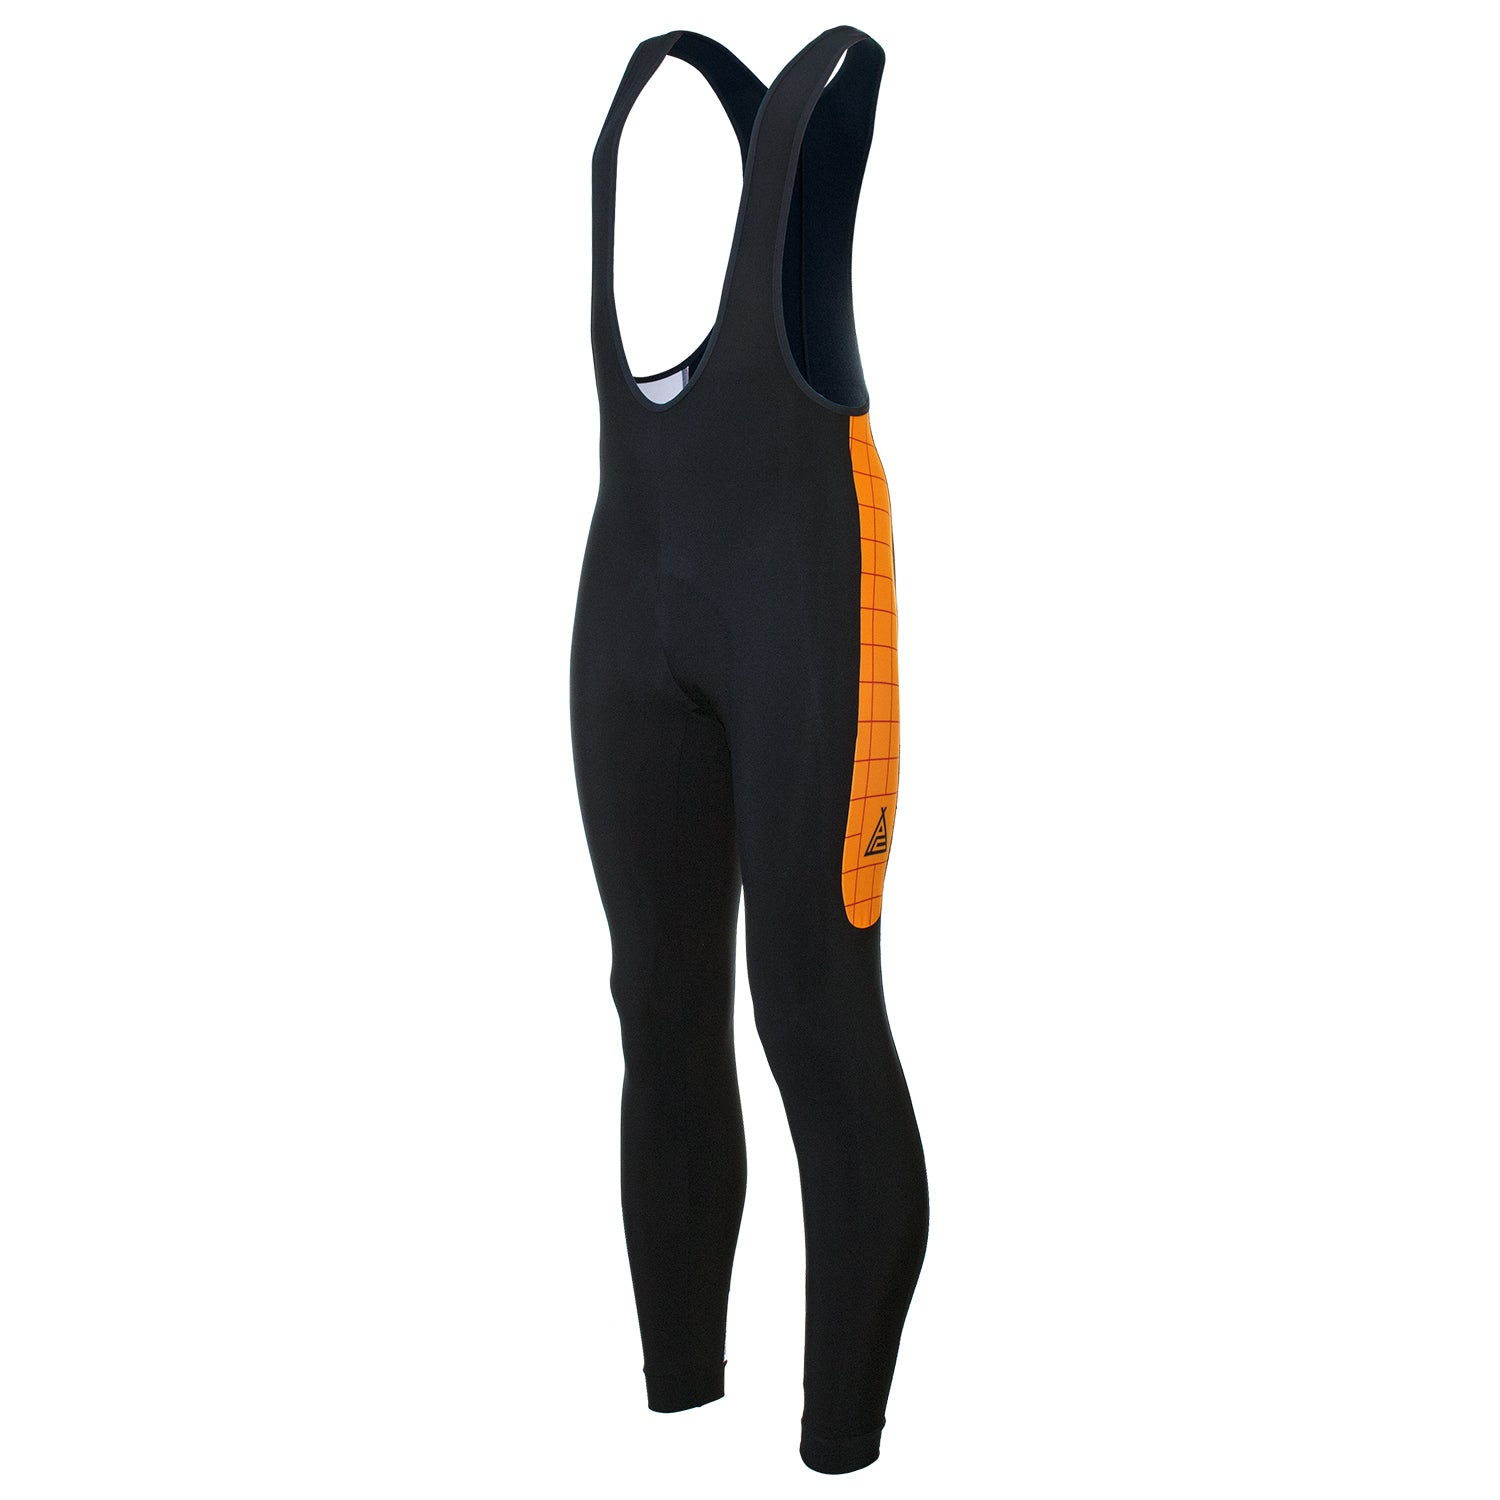 Prendas Ciclismo VEGA Winter Bibtights